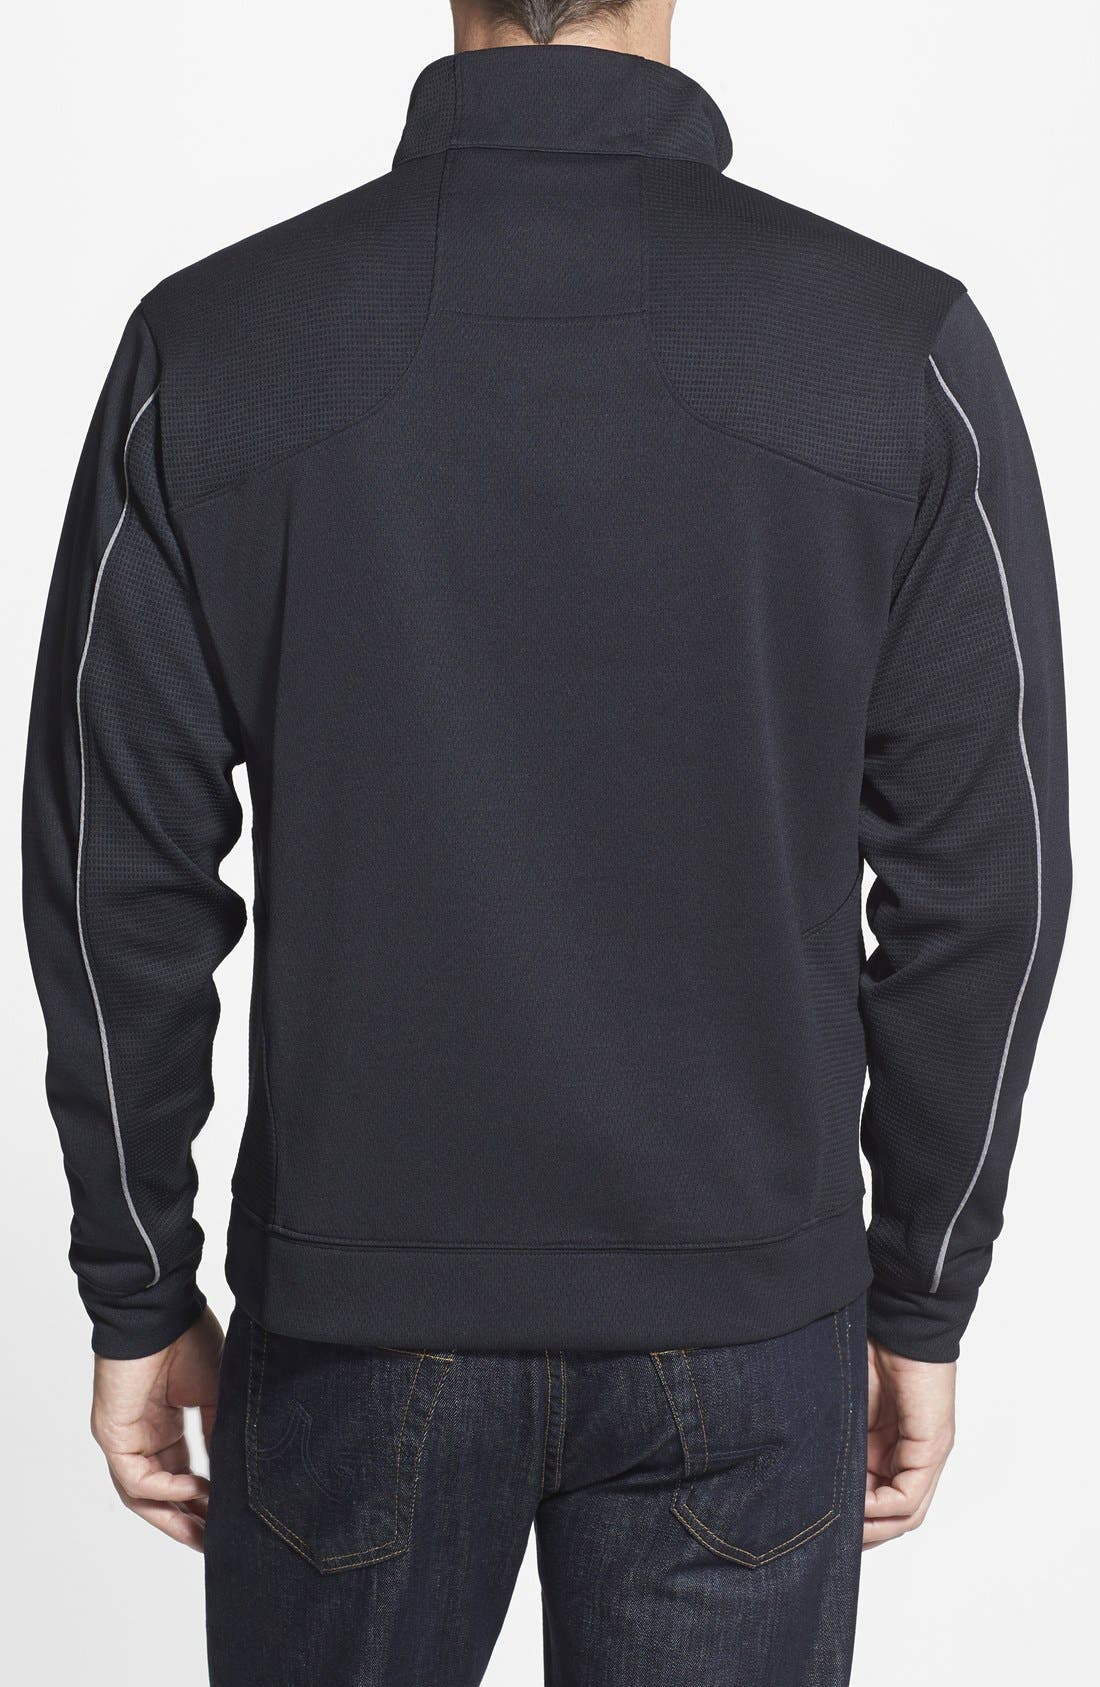 Alternate Image 2  - Cutter & Buck Baltimore Ravens - Edge DryTec Moisture Wicking Half Zip Pullover